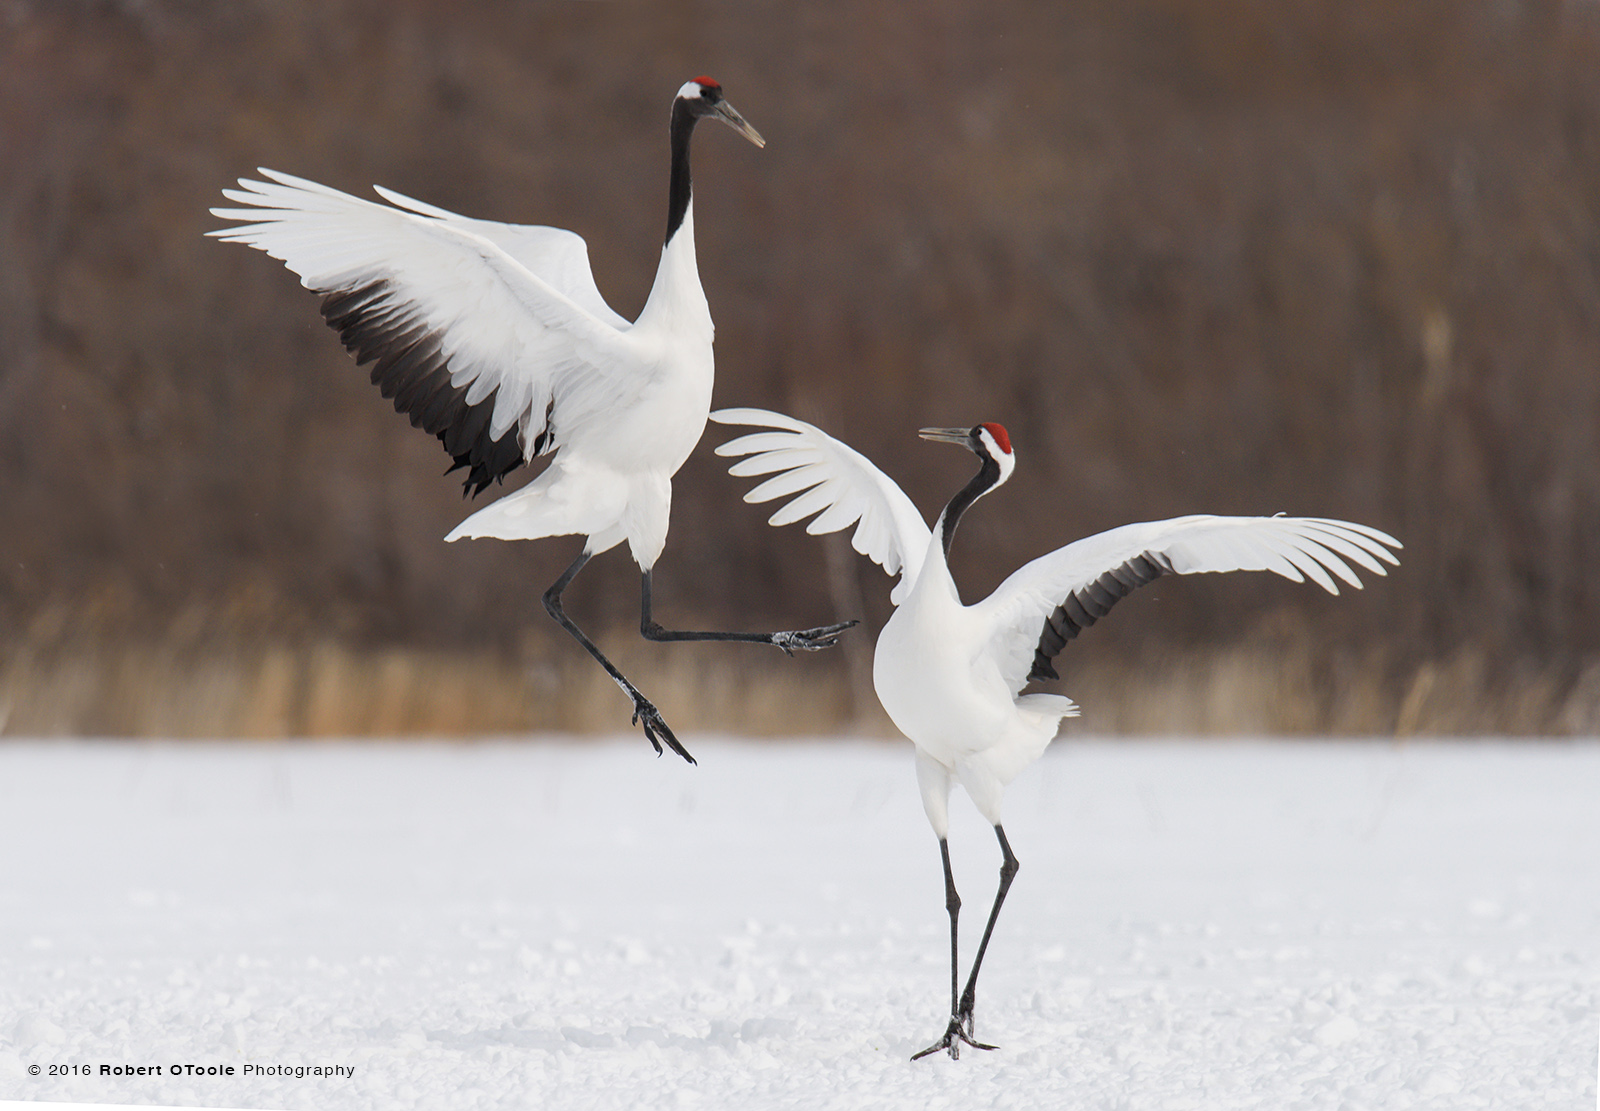 Pair of  Adult Red-Crowned Cranes Dancing on Snow